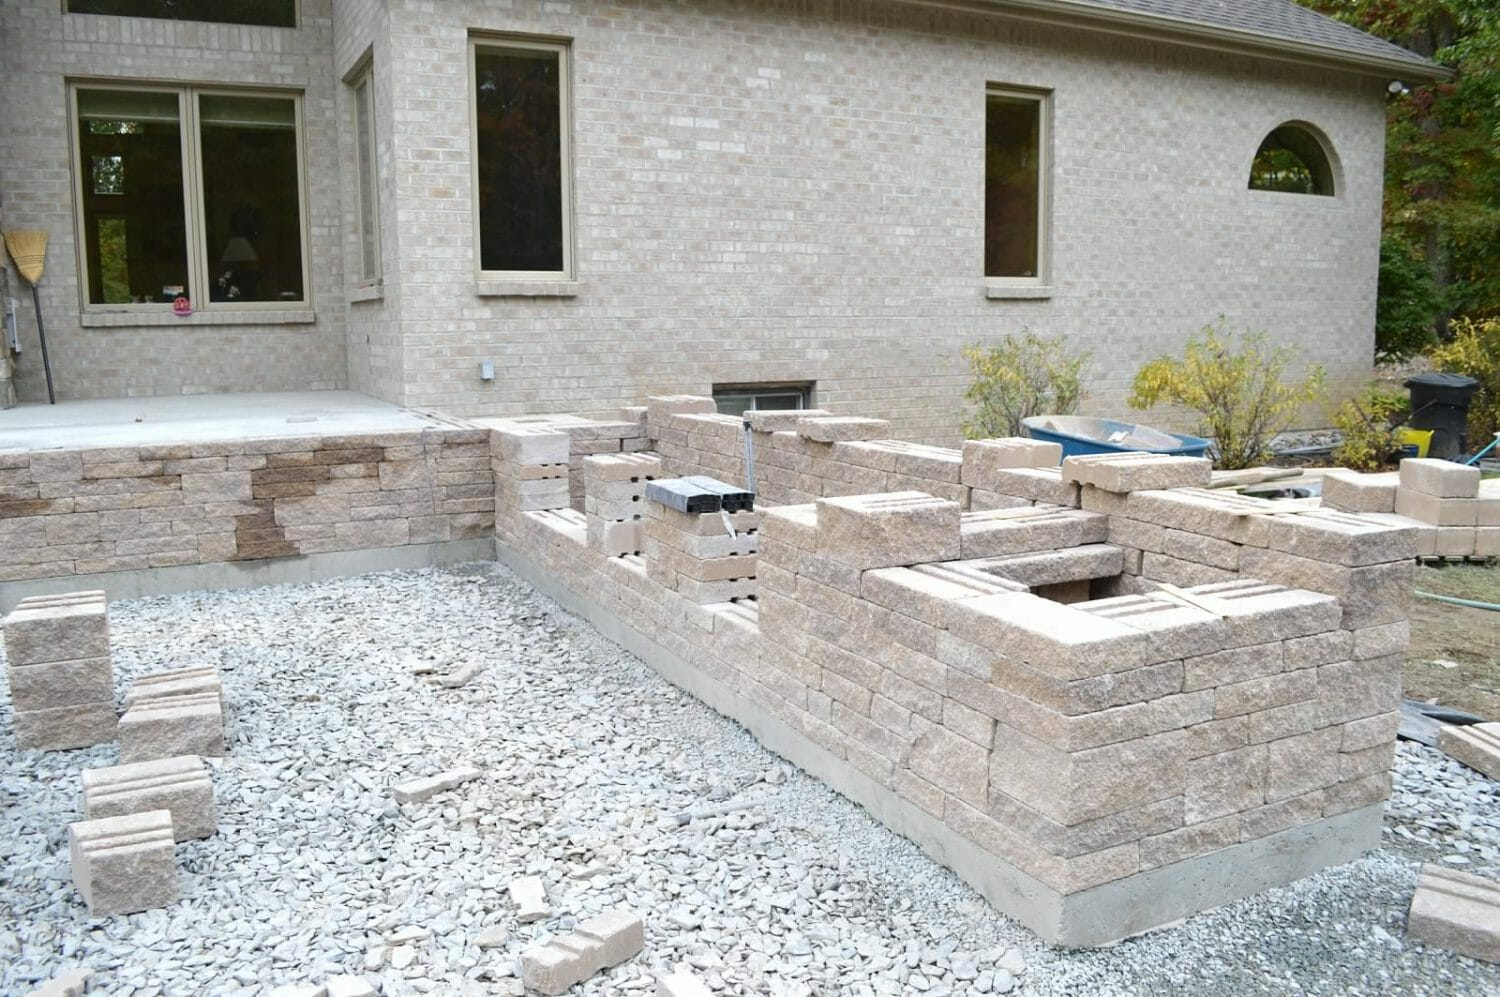 Wynantskill Albany NY patio hardscape landscape design 1500x997 - Landscape Plan Installation and Project Management